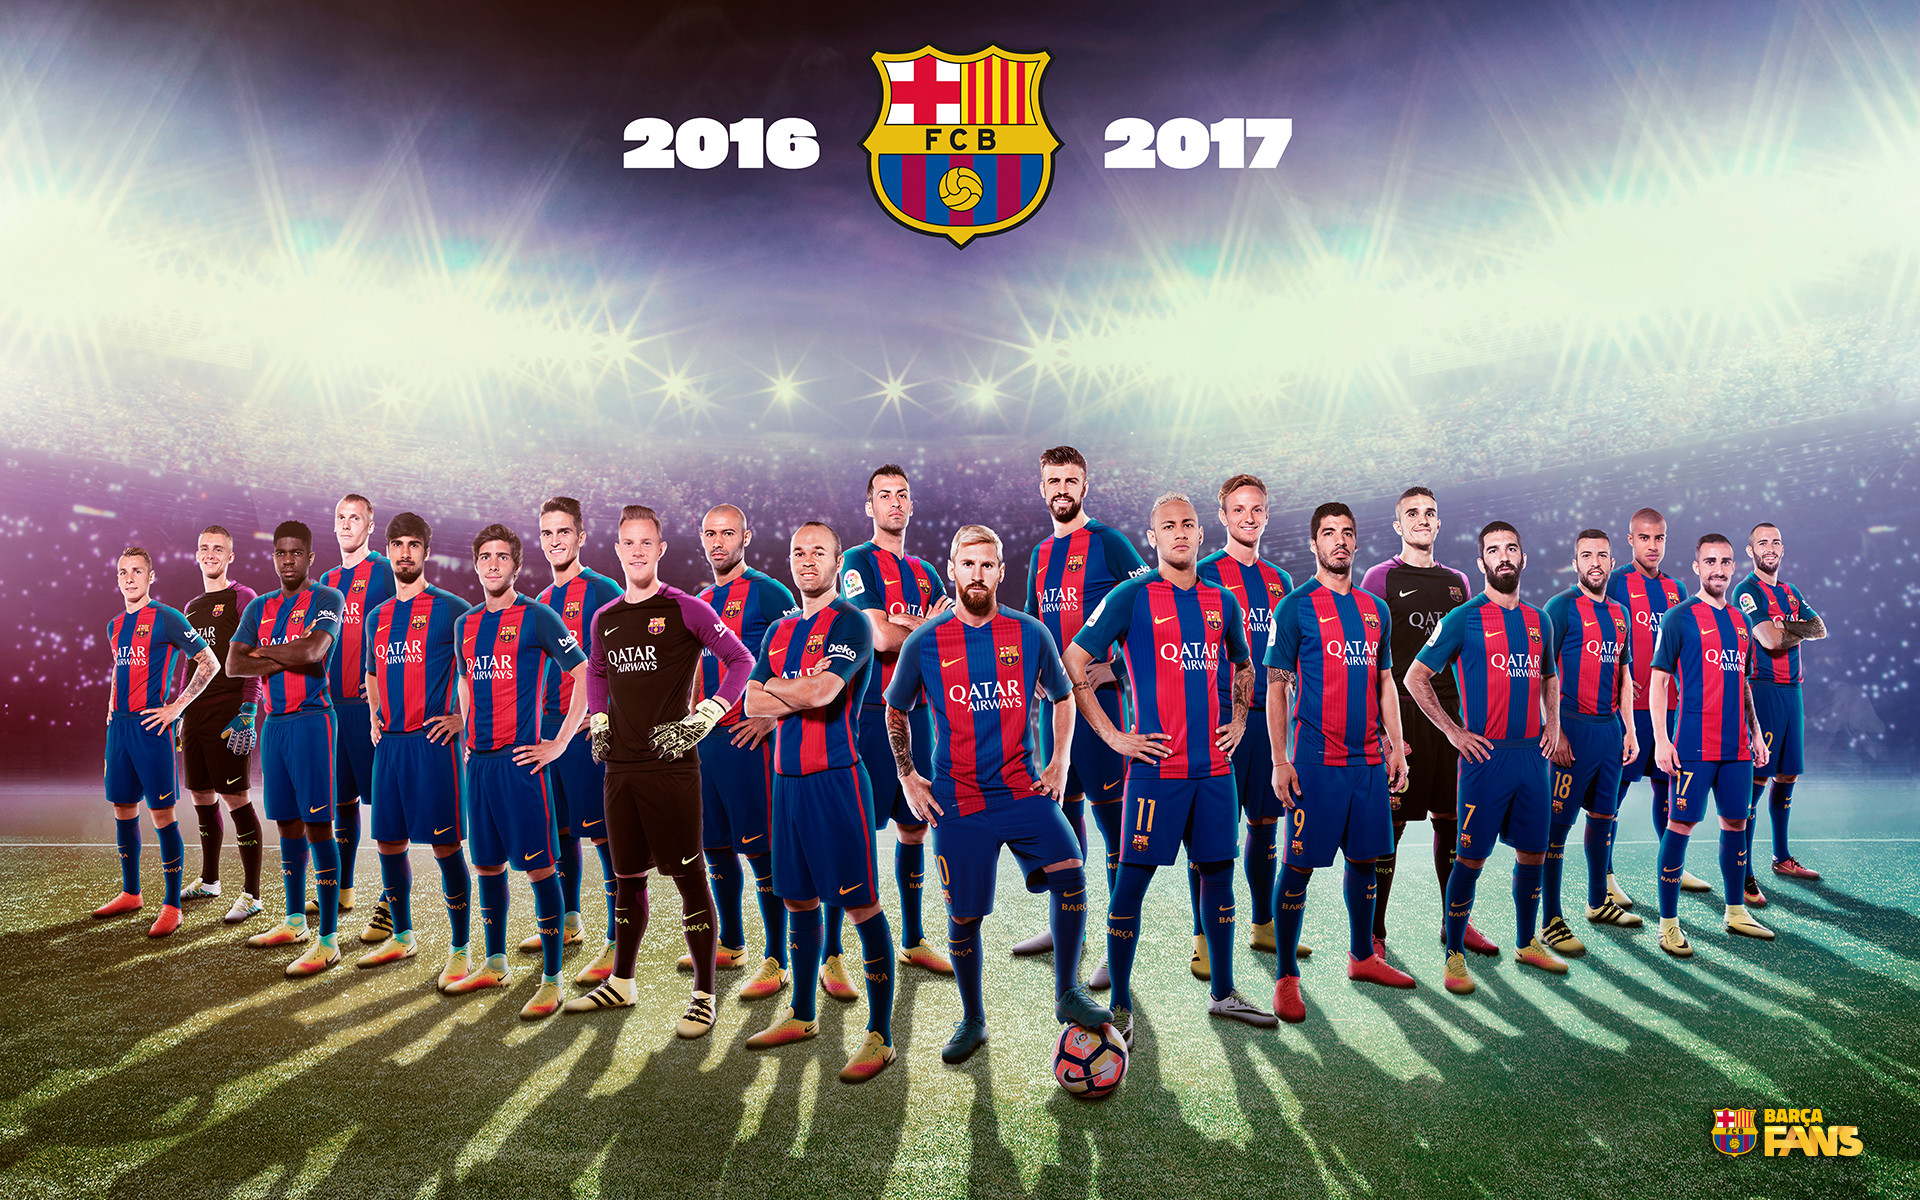 fc barcelona wallpaper 2017 ·①